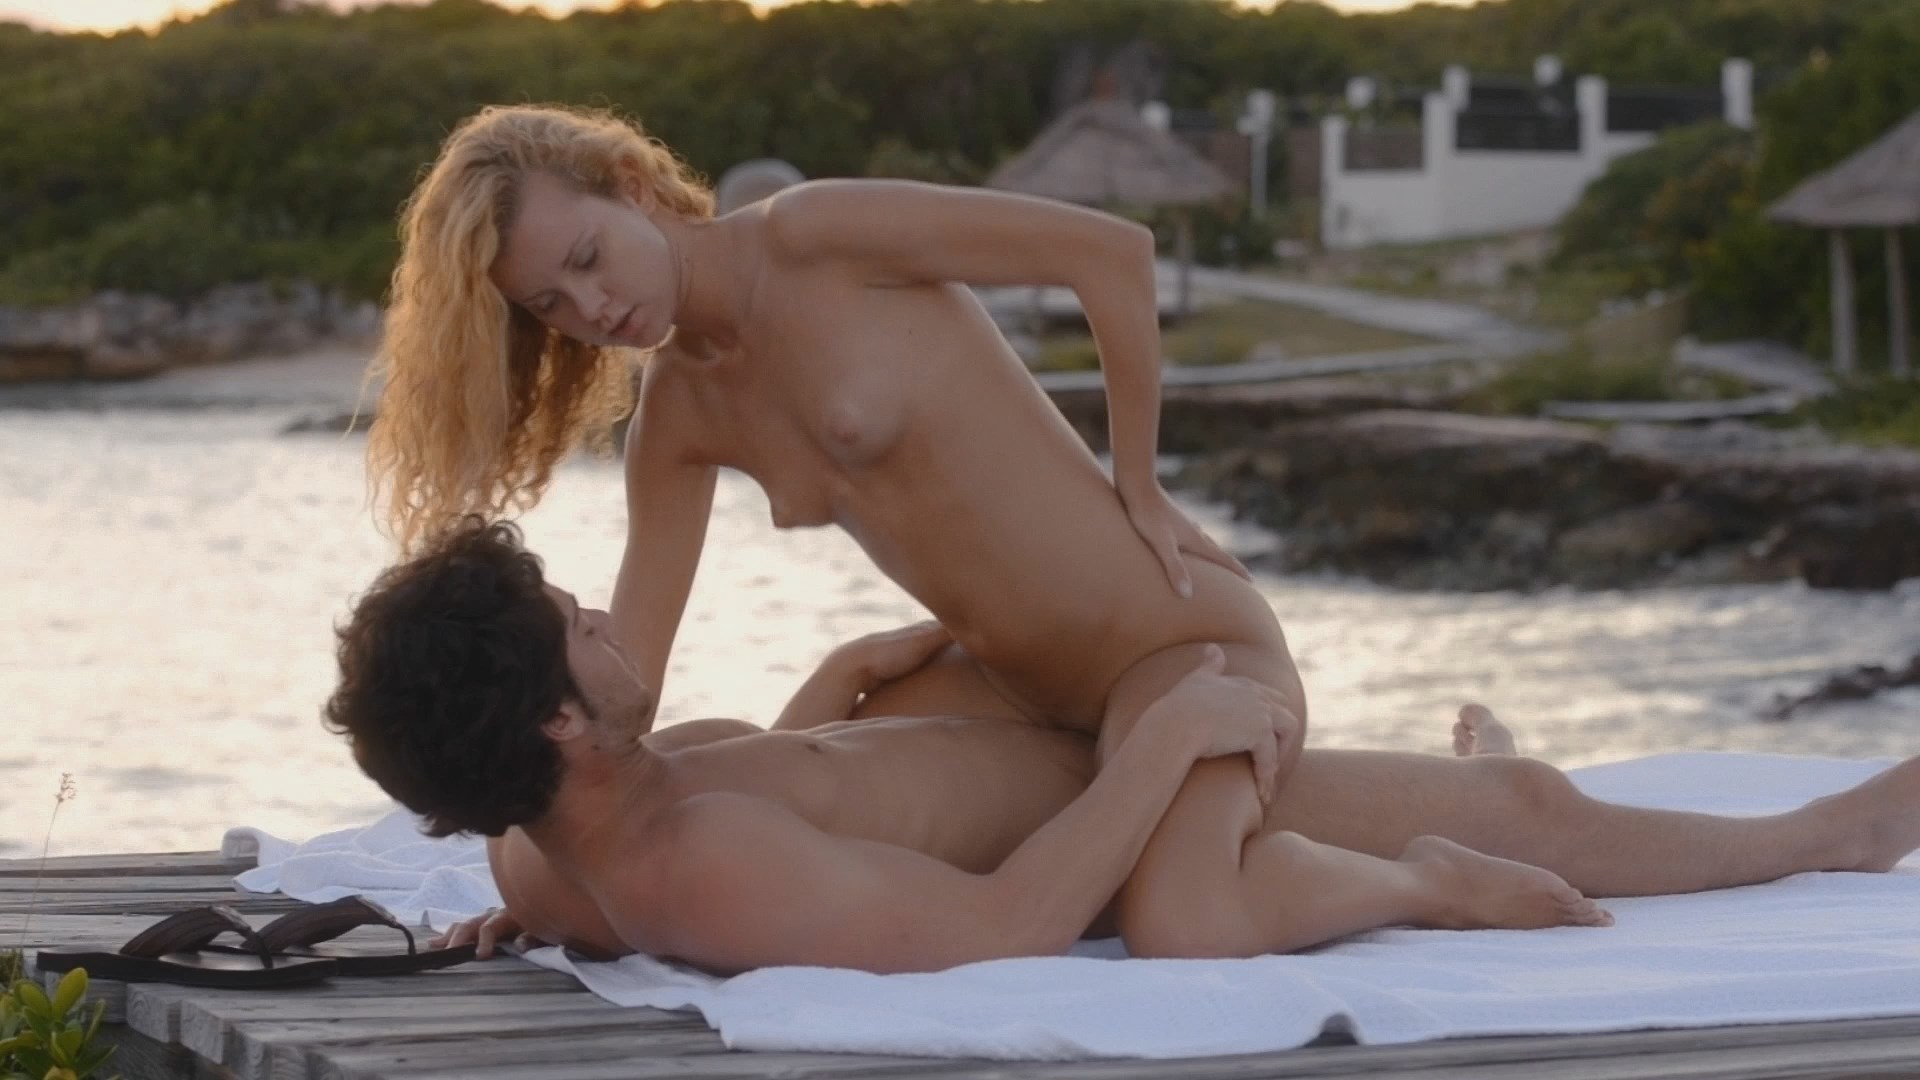 Hot fuck by the shore. MUST SEE!